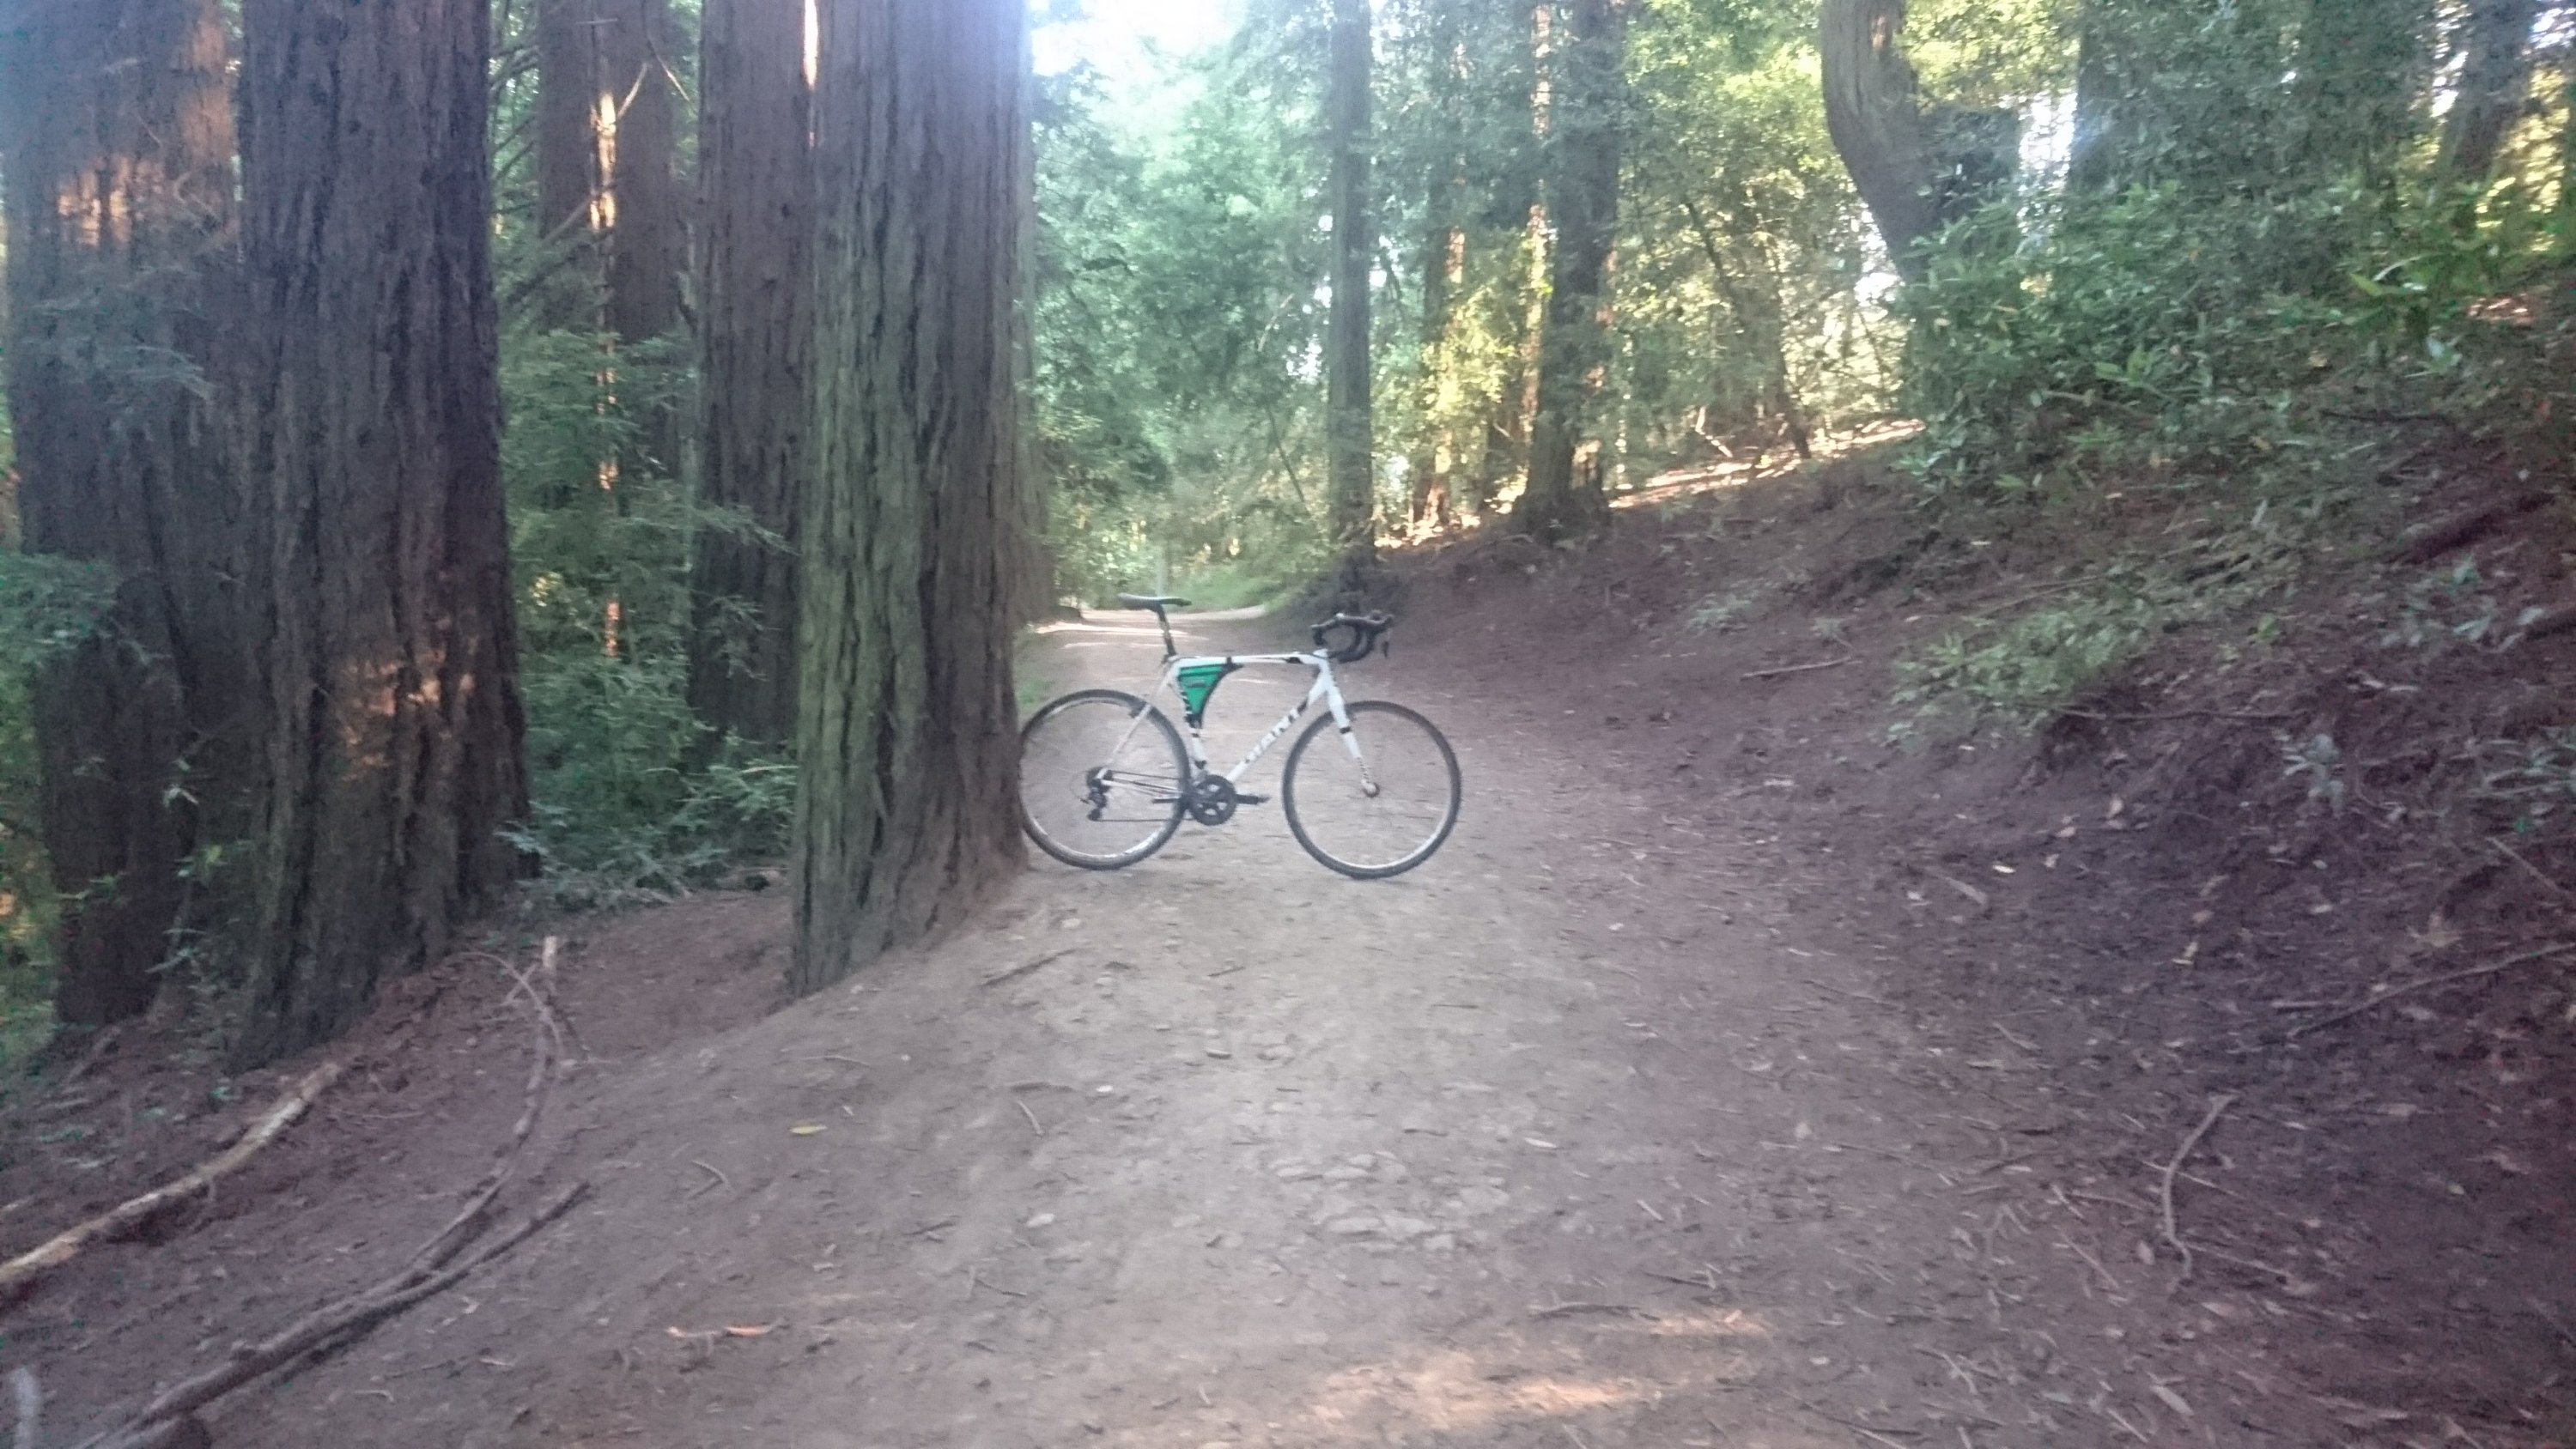 Bike on trail in redwoods.